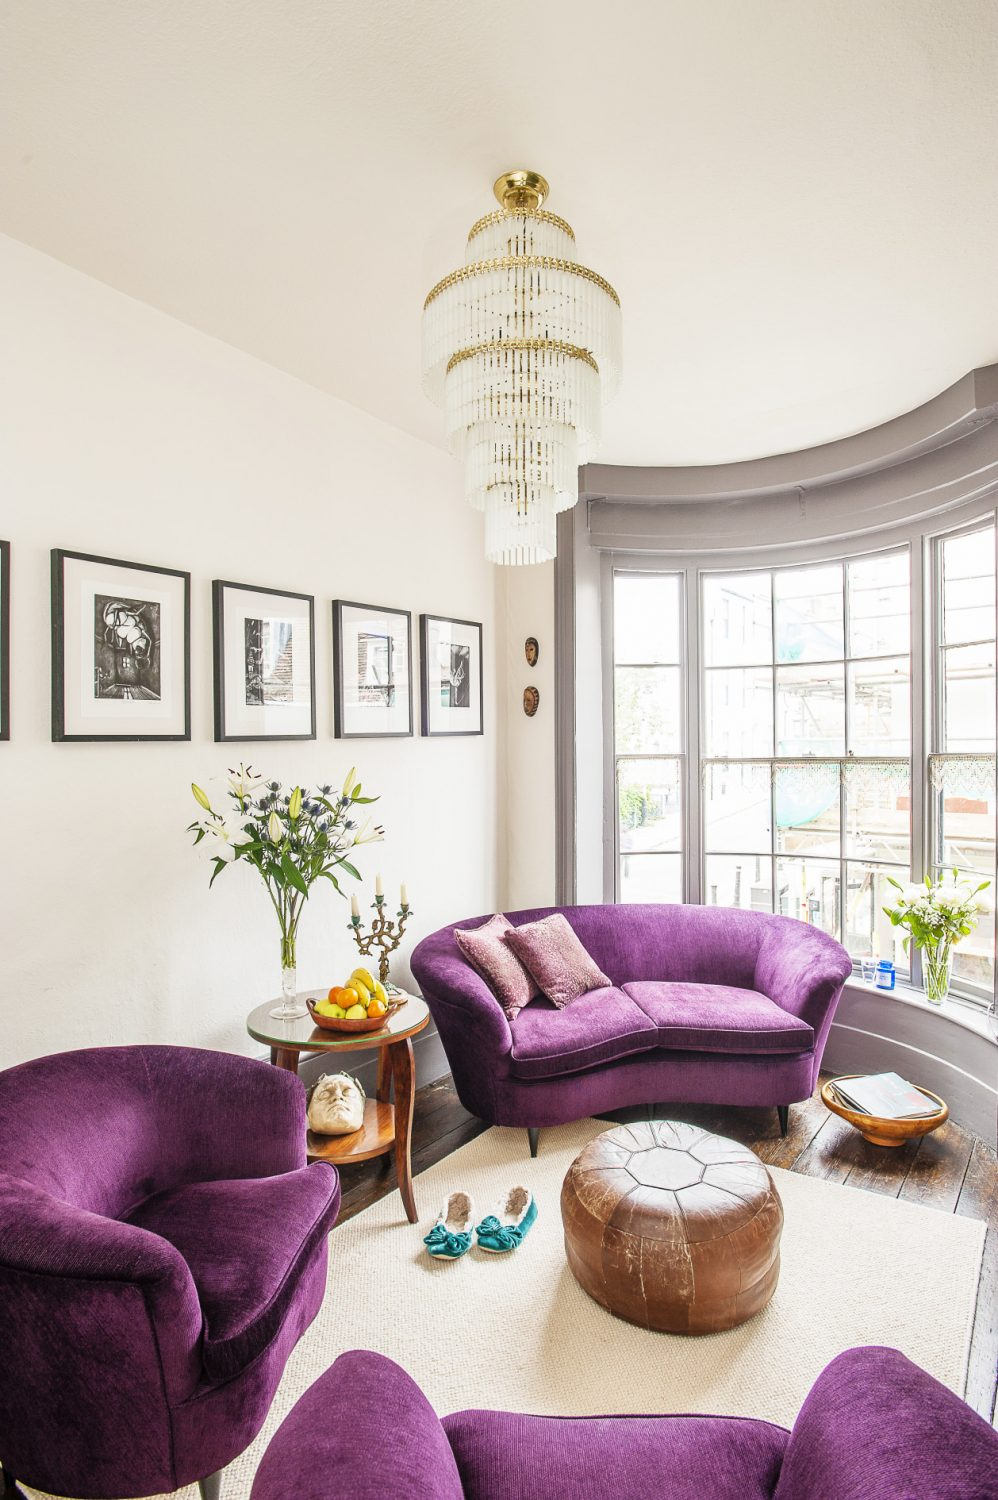 The purple velvet sofa and chairs are 1950s Italian. The plaster head under the coffee table is a 1920s Austrian copy of an antique death mask, from Tallboy Interiors. The prints are by Sassy Luke and the chandelier is 1970s from Chiswick Auctions